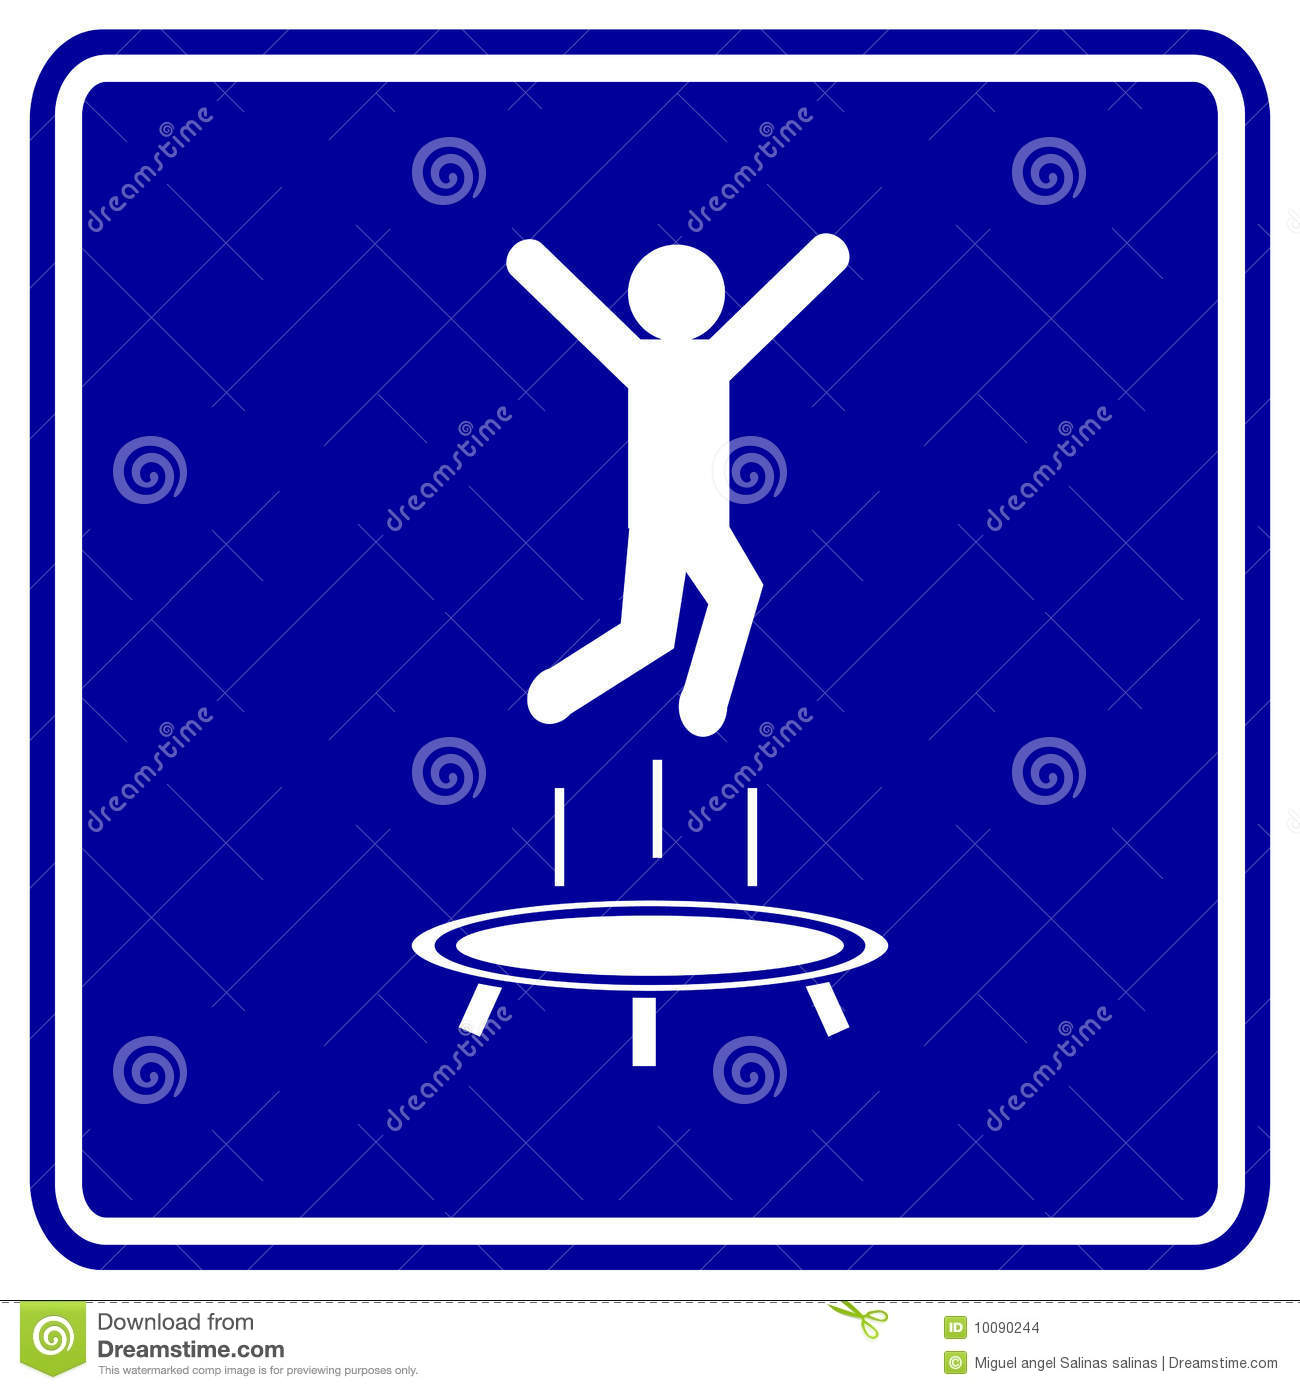 athumbs.dreamstime.com_z_trampoline_jumping_man_vector_blue_sign_10090244.jpg